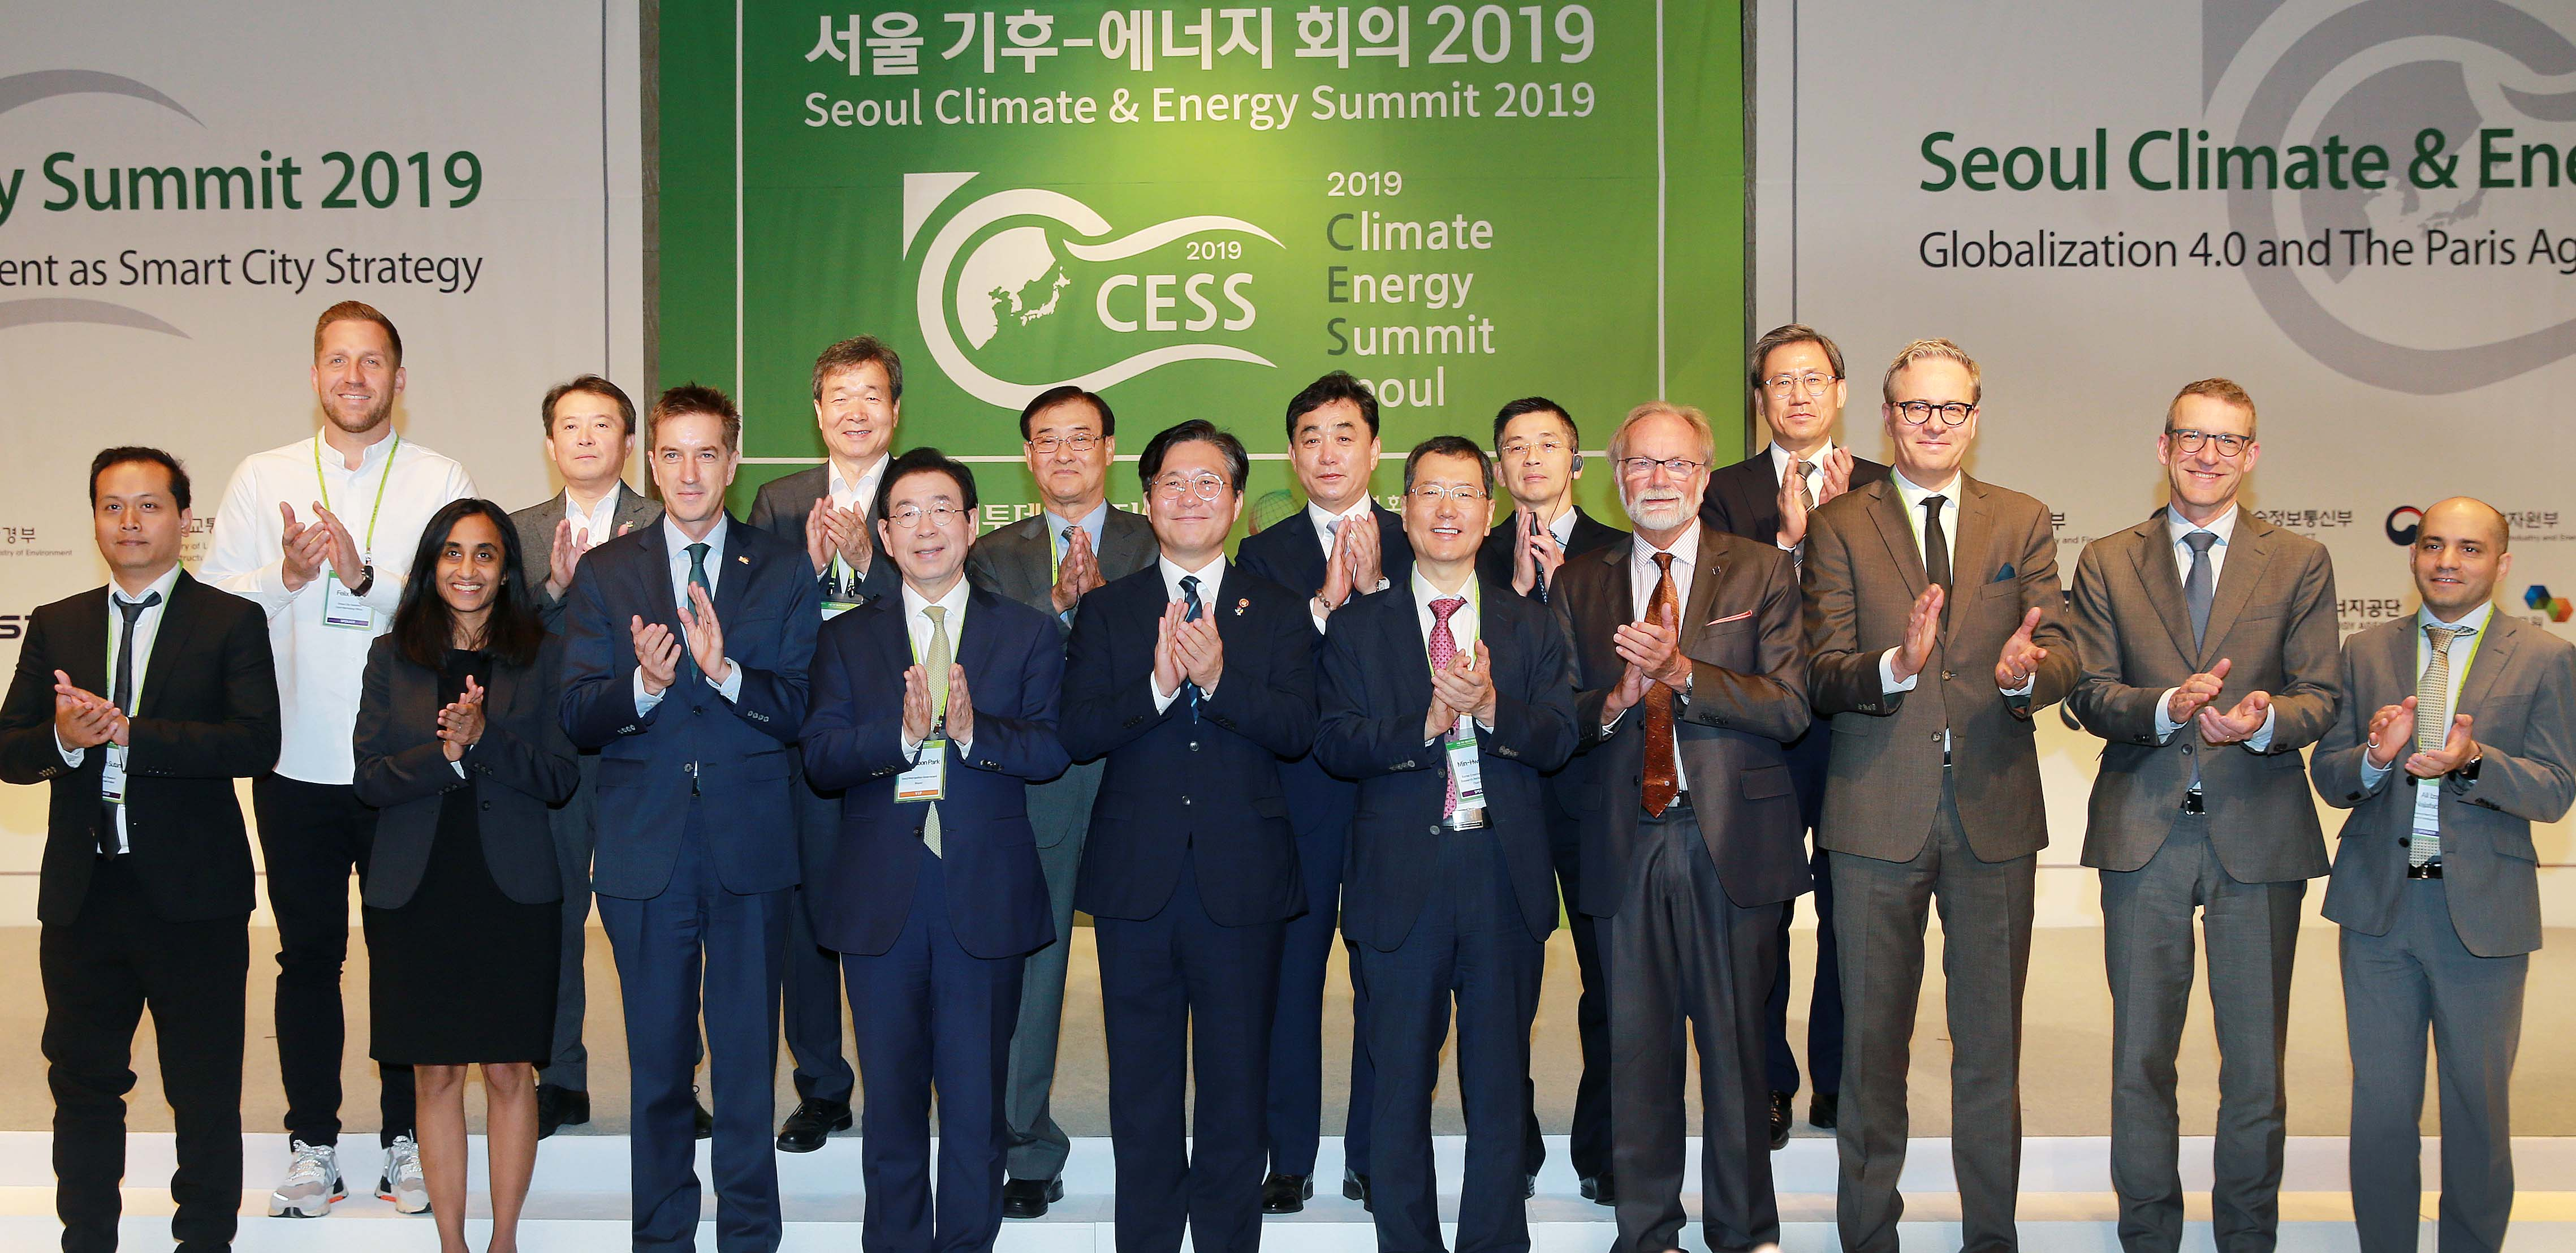 Minister Sung attends Seoul Climate and Energy Summit 2019 Image 0